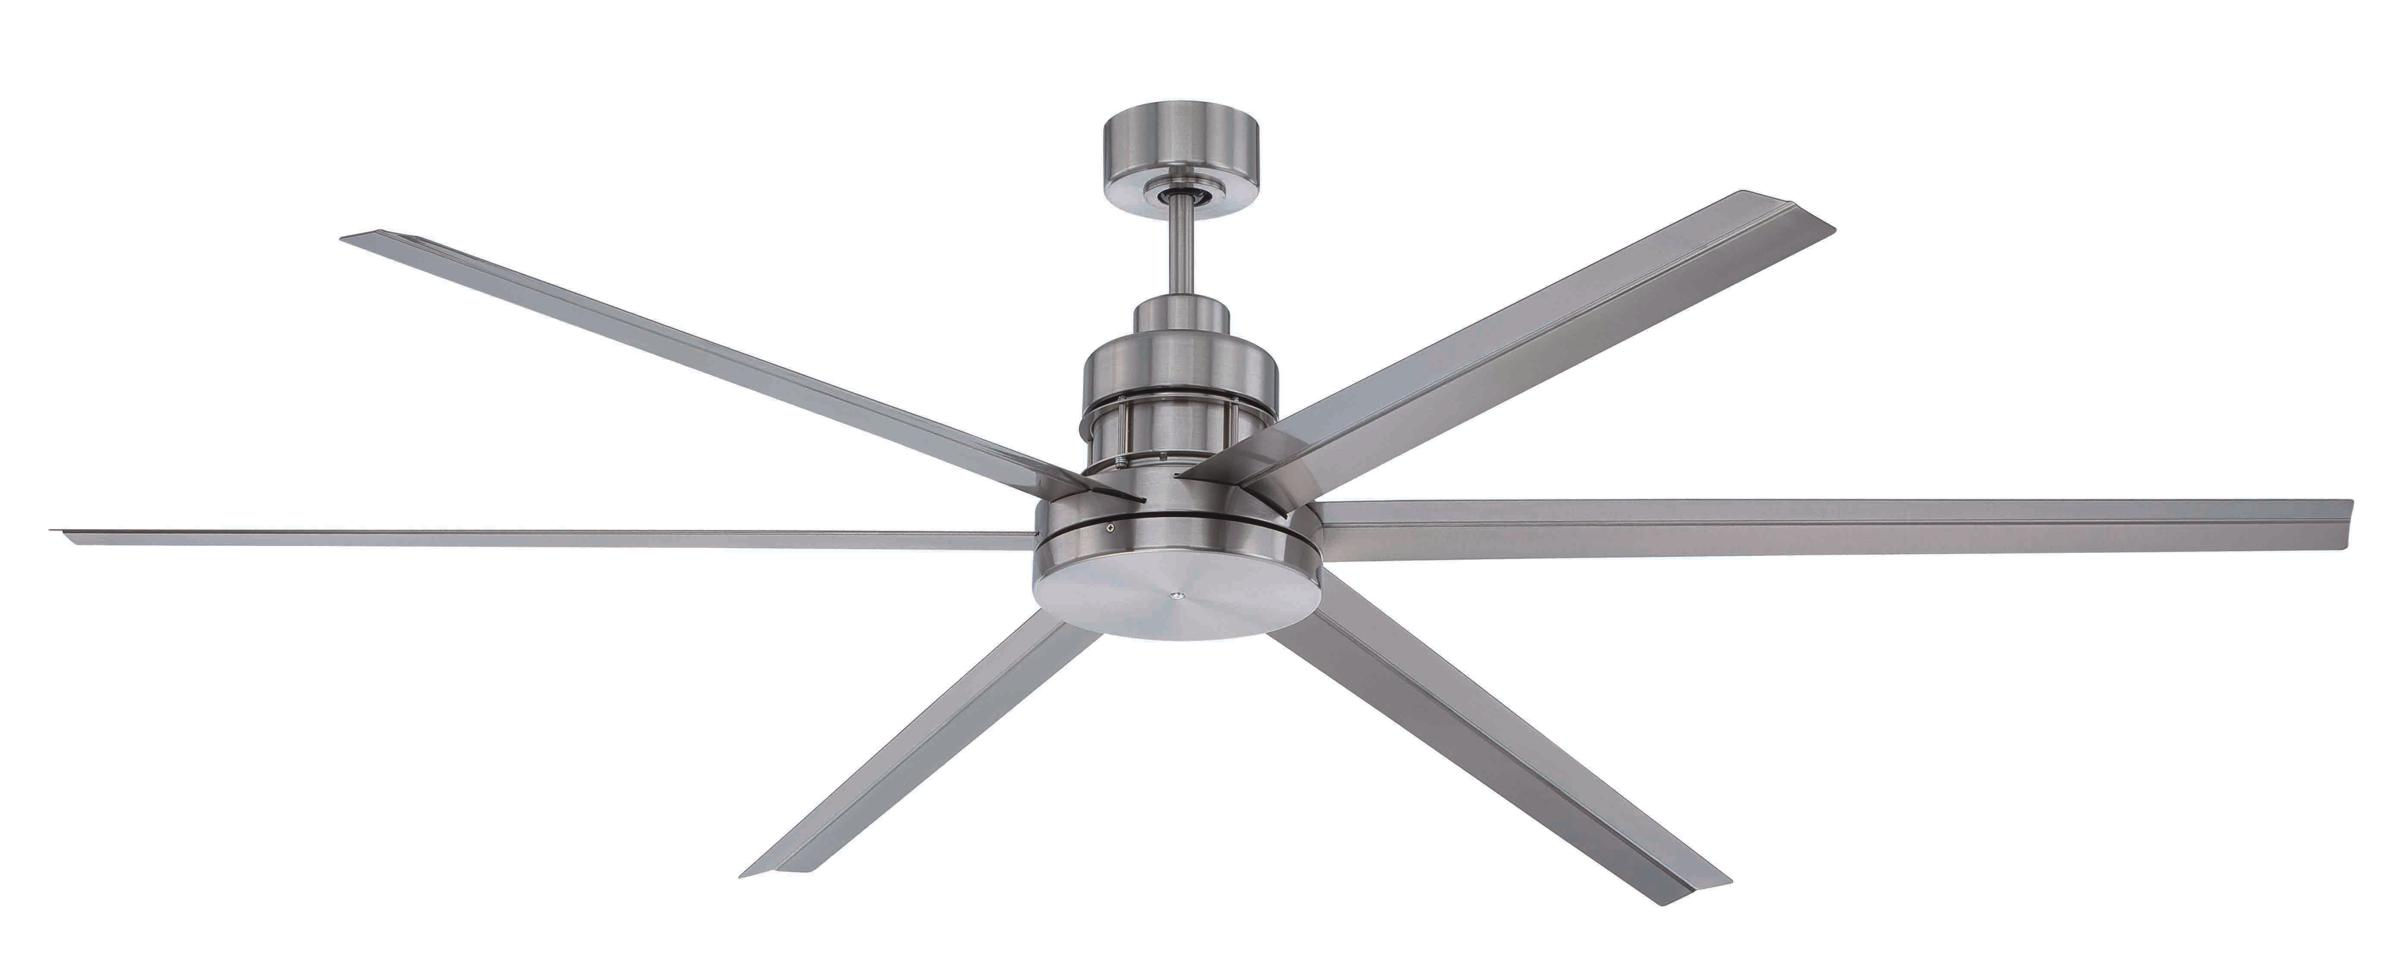 10 adventages of Huge ceiling fans